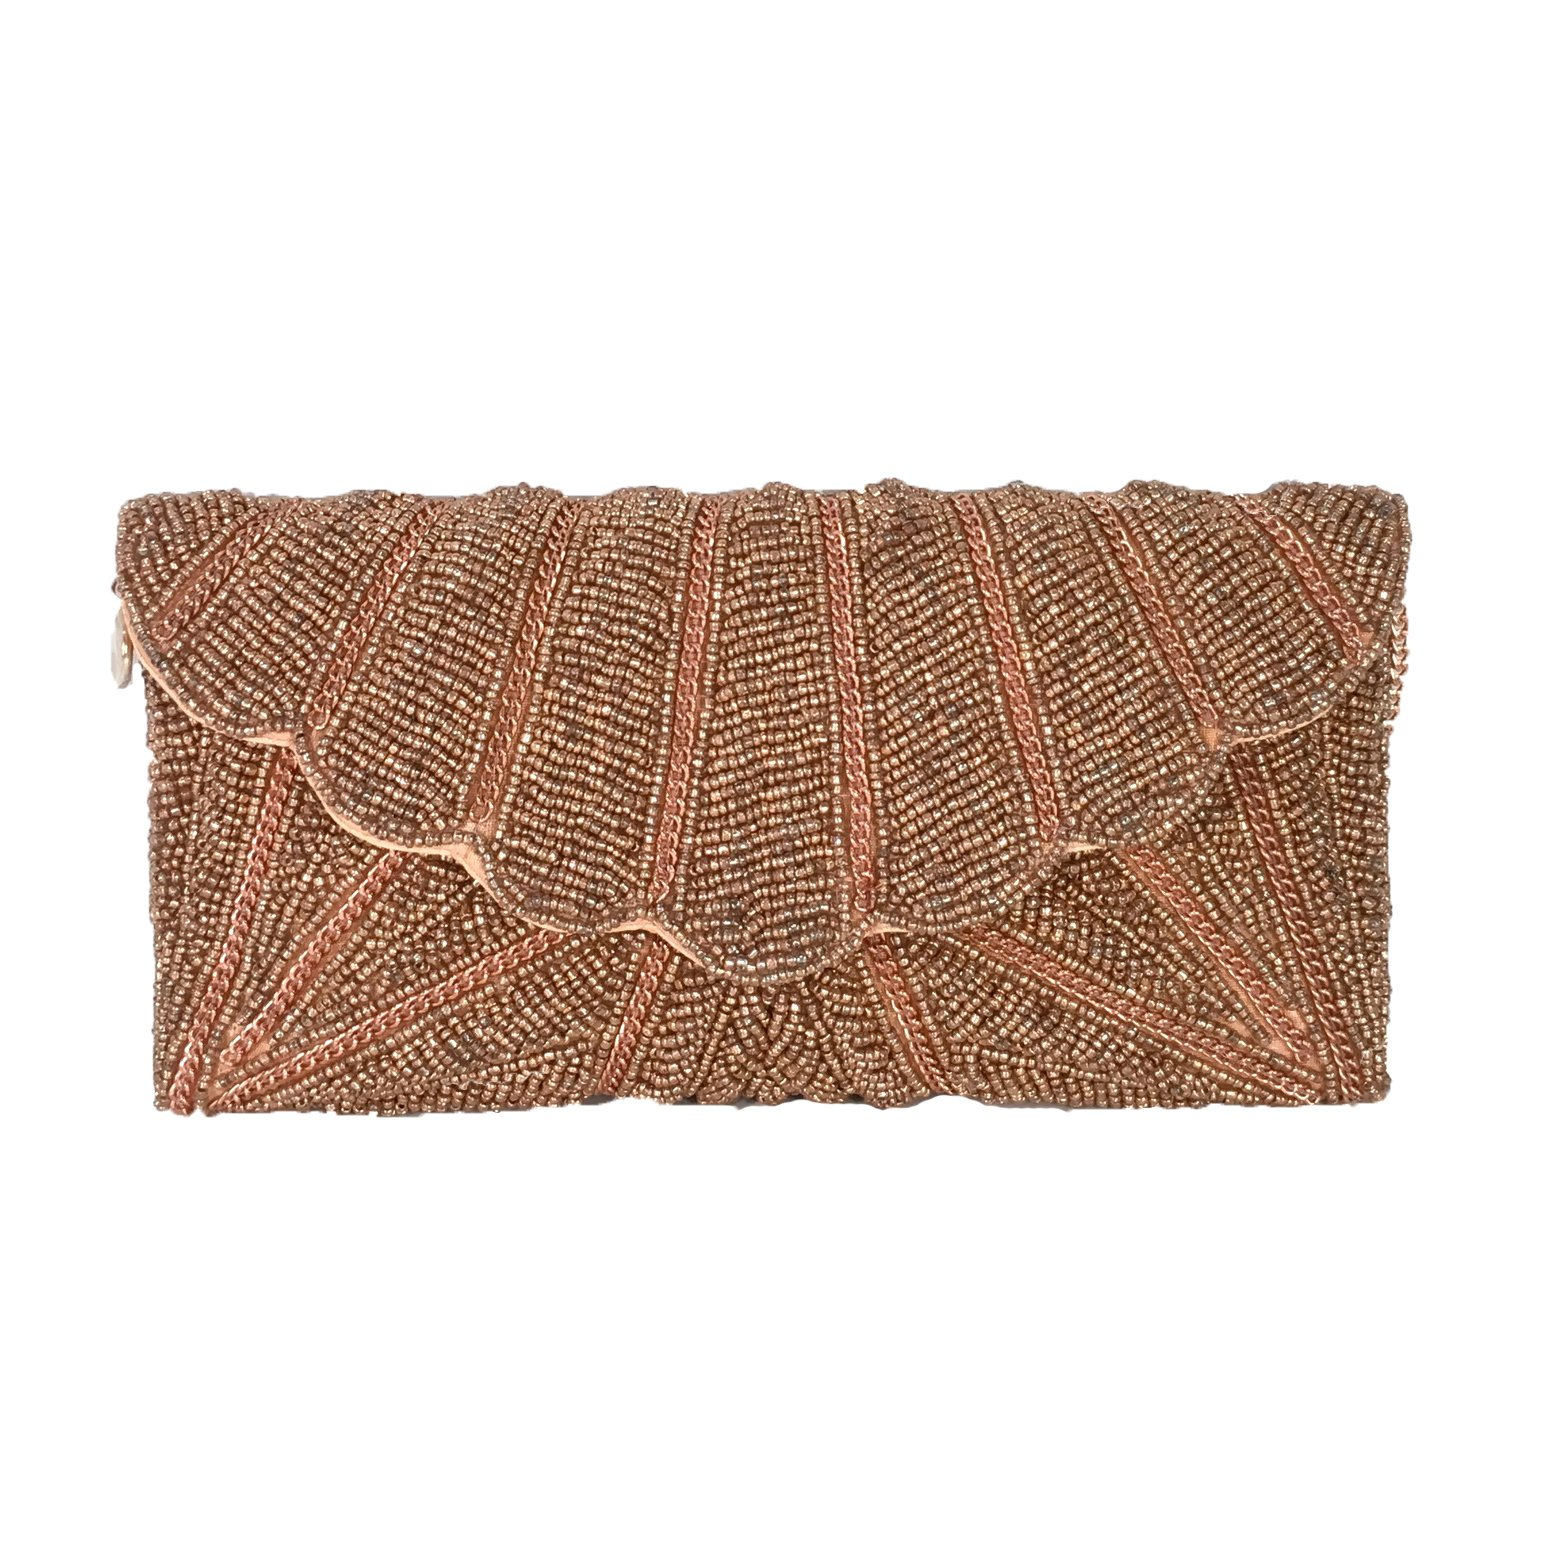 From St Xavier Zia Beaded Evening Clutch, Rose Gold